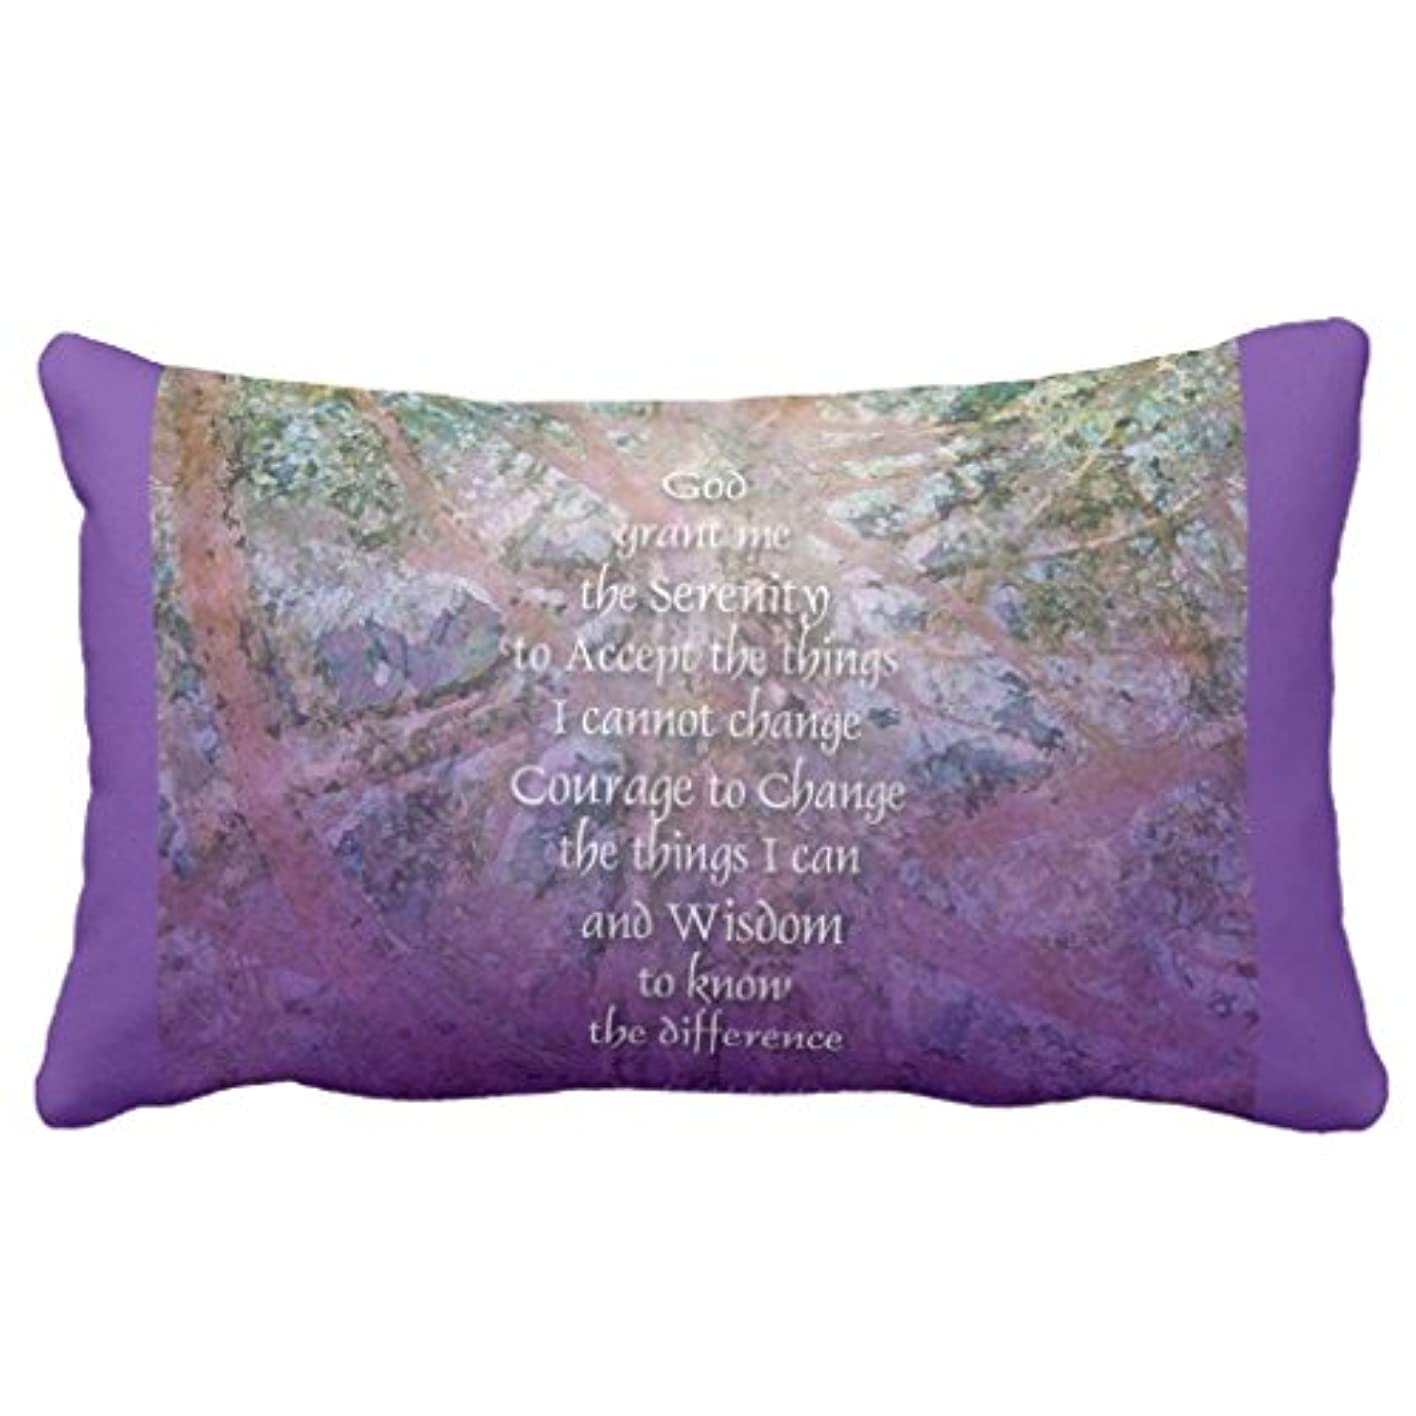 熱心カヌー弱点Zazzle Serenity Prayer Incense Cedar American Mojo枕 13